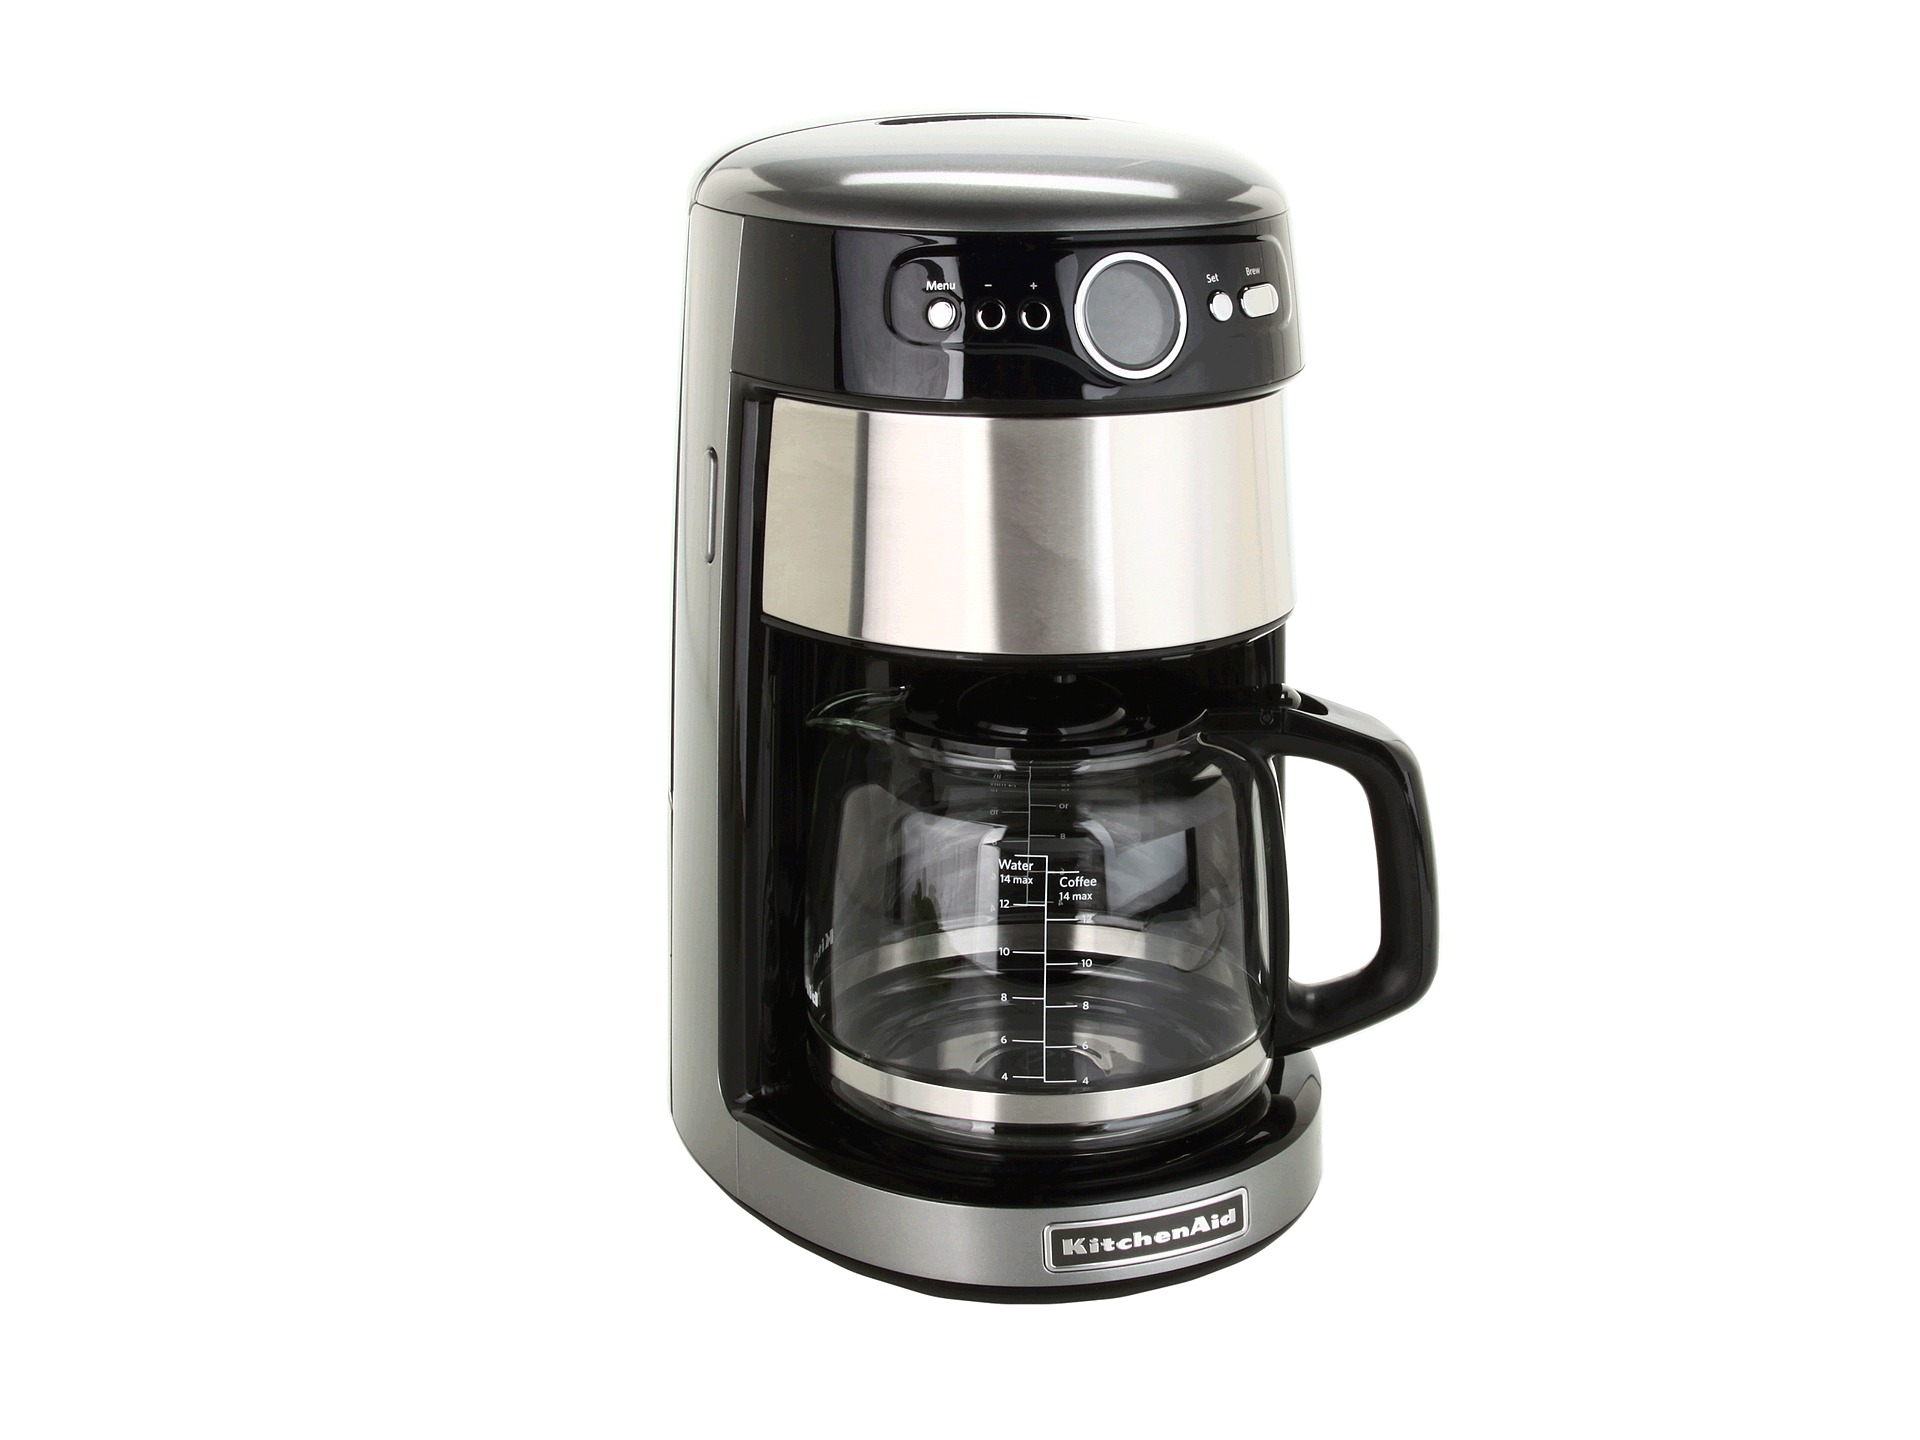 Kitchenaid Coffee Maker Cleaner : Kitchenaid: Kitchenaid 14 Cup Coffee Maker